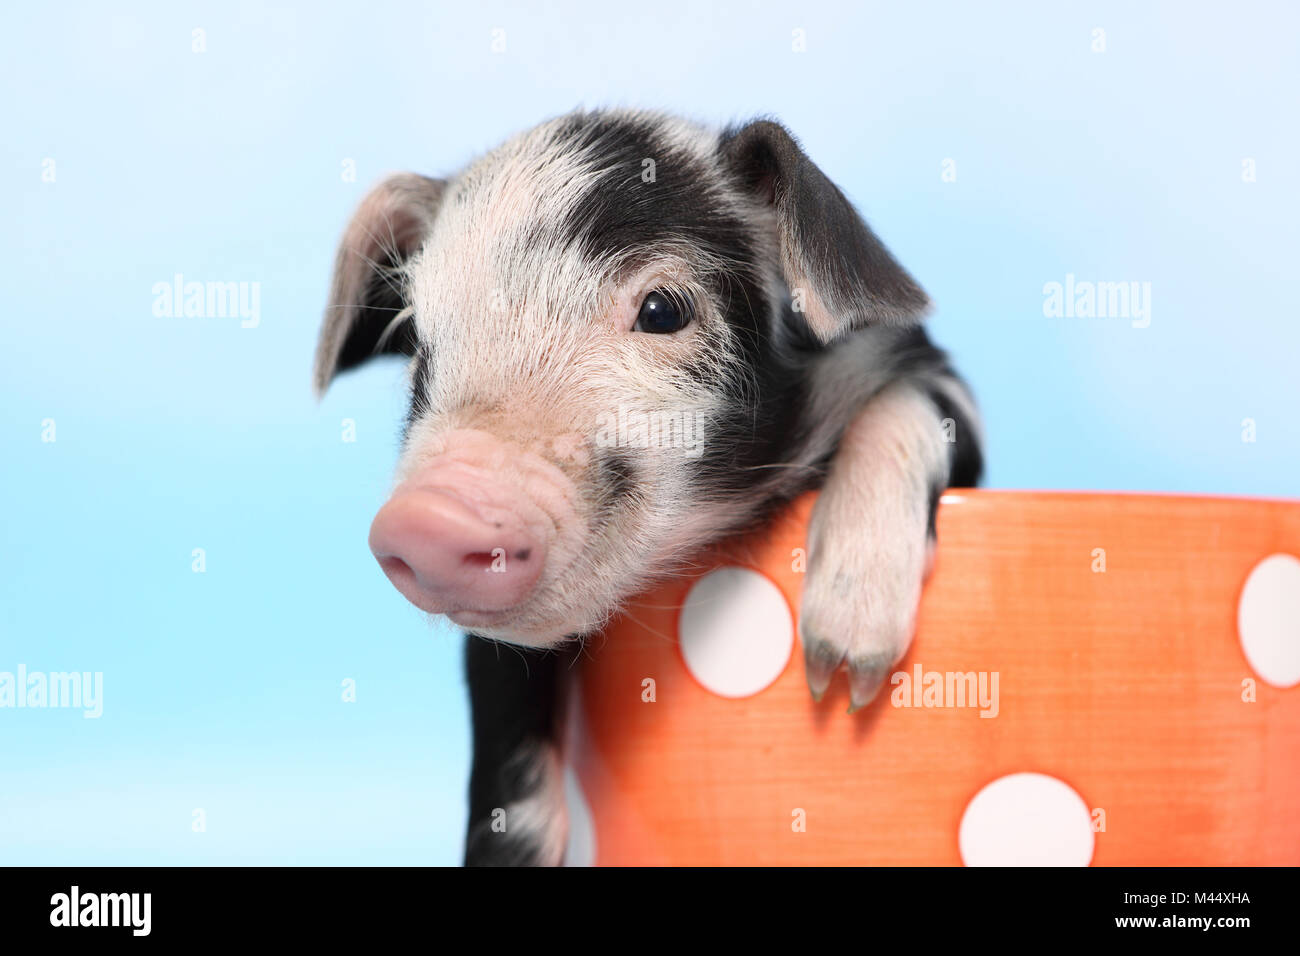 Domestic Pig, Turopolje x ?. Piglet (1 week old) in a big orange cup with polka dots. Studio picture seen against - Stock Image